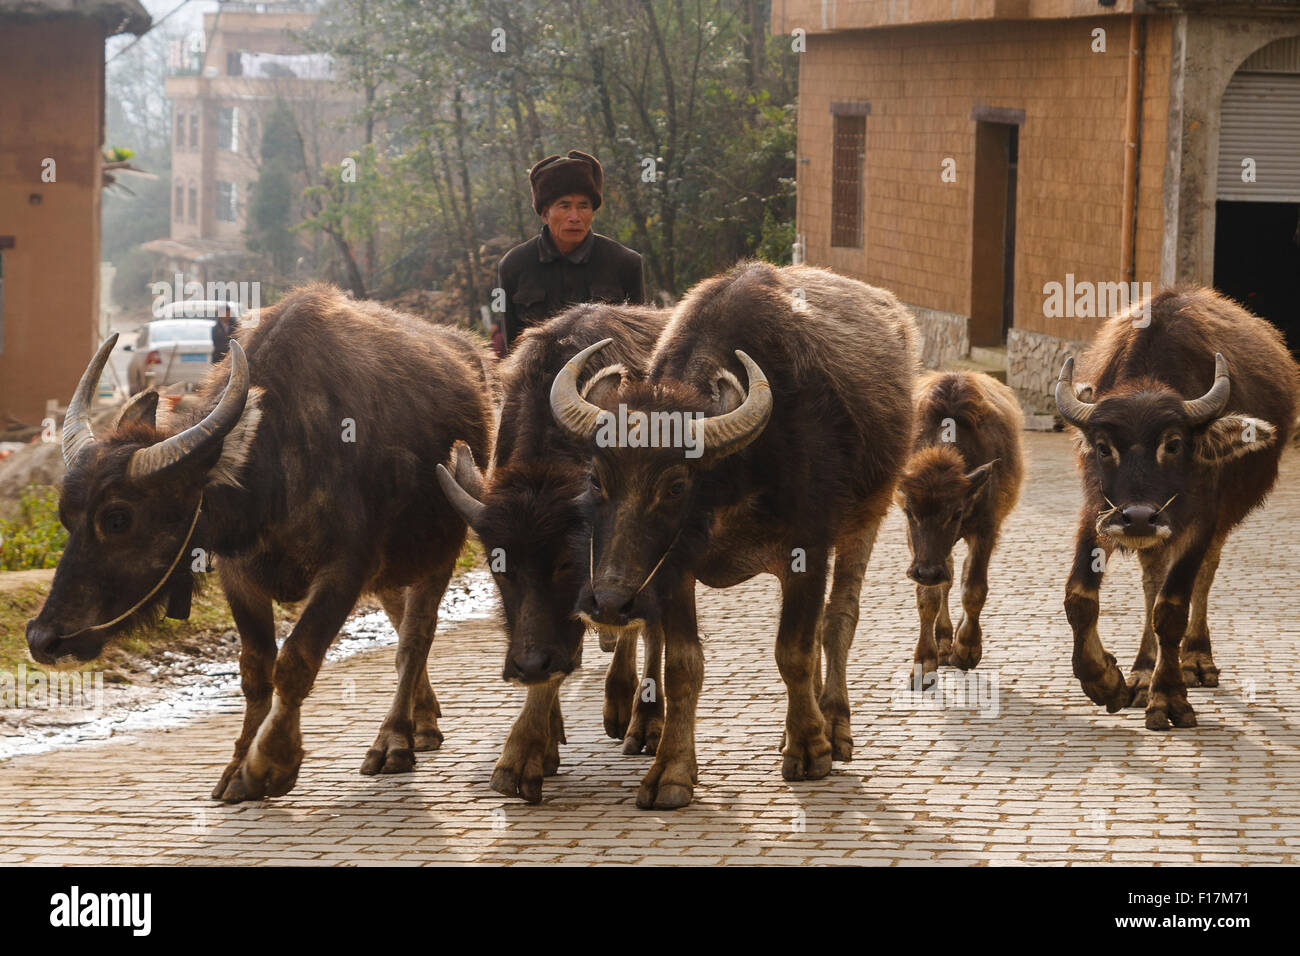 Water Buffalo and herder in a rural Chinese village in Yuanyang, Yunnan, China - Stock Image